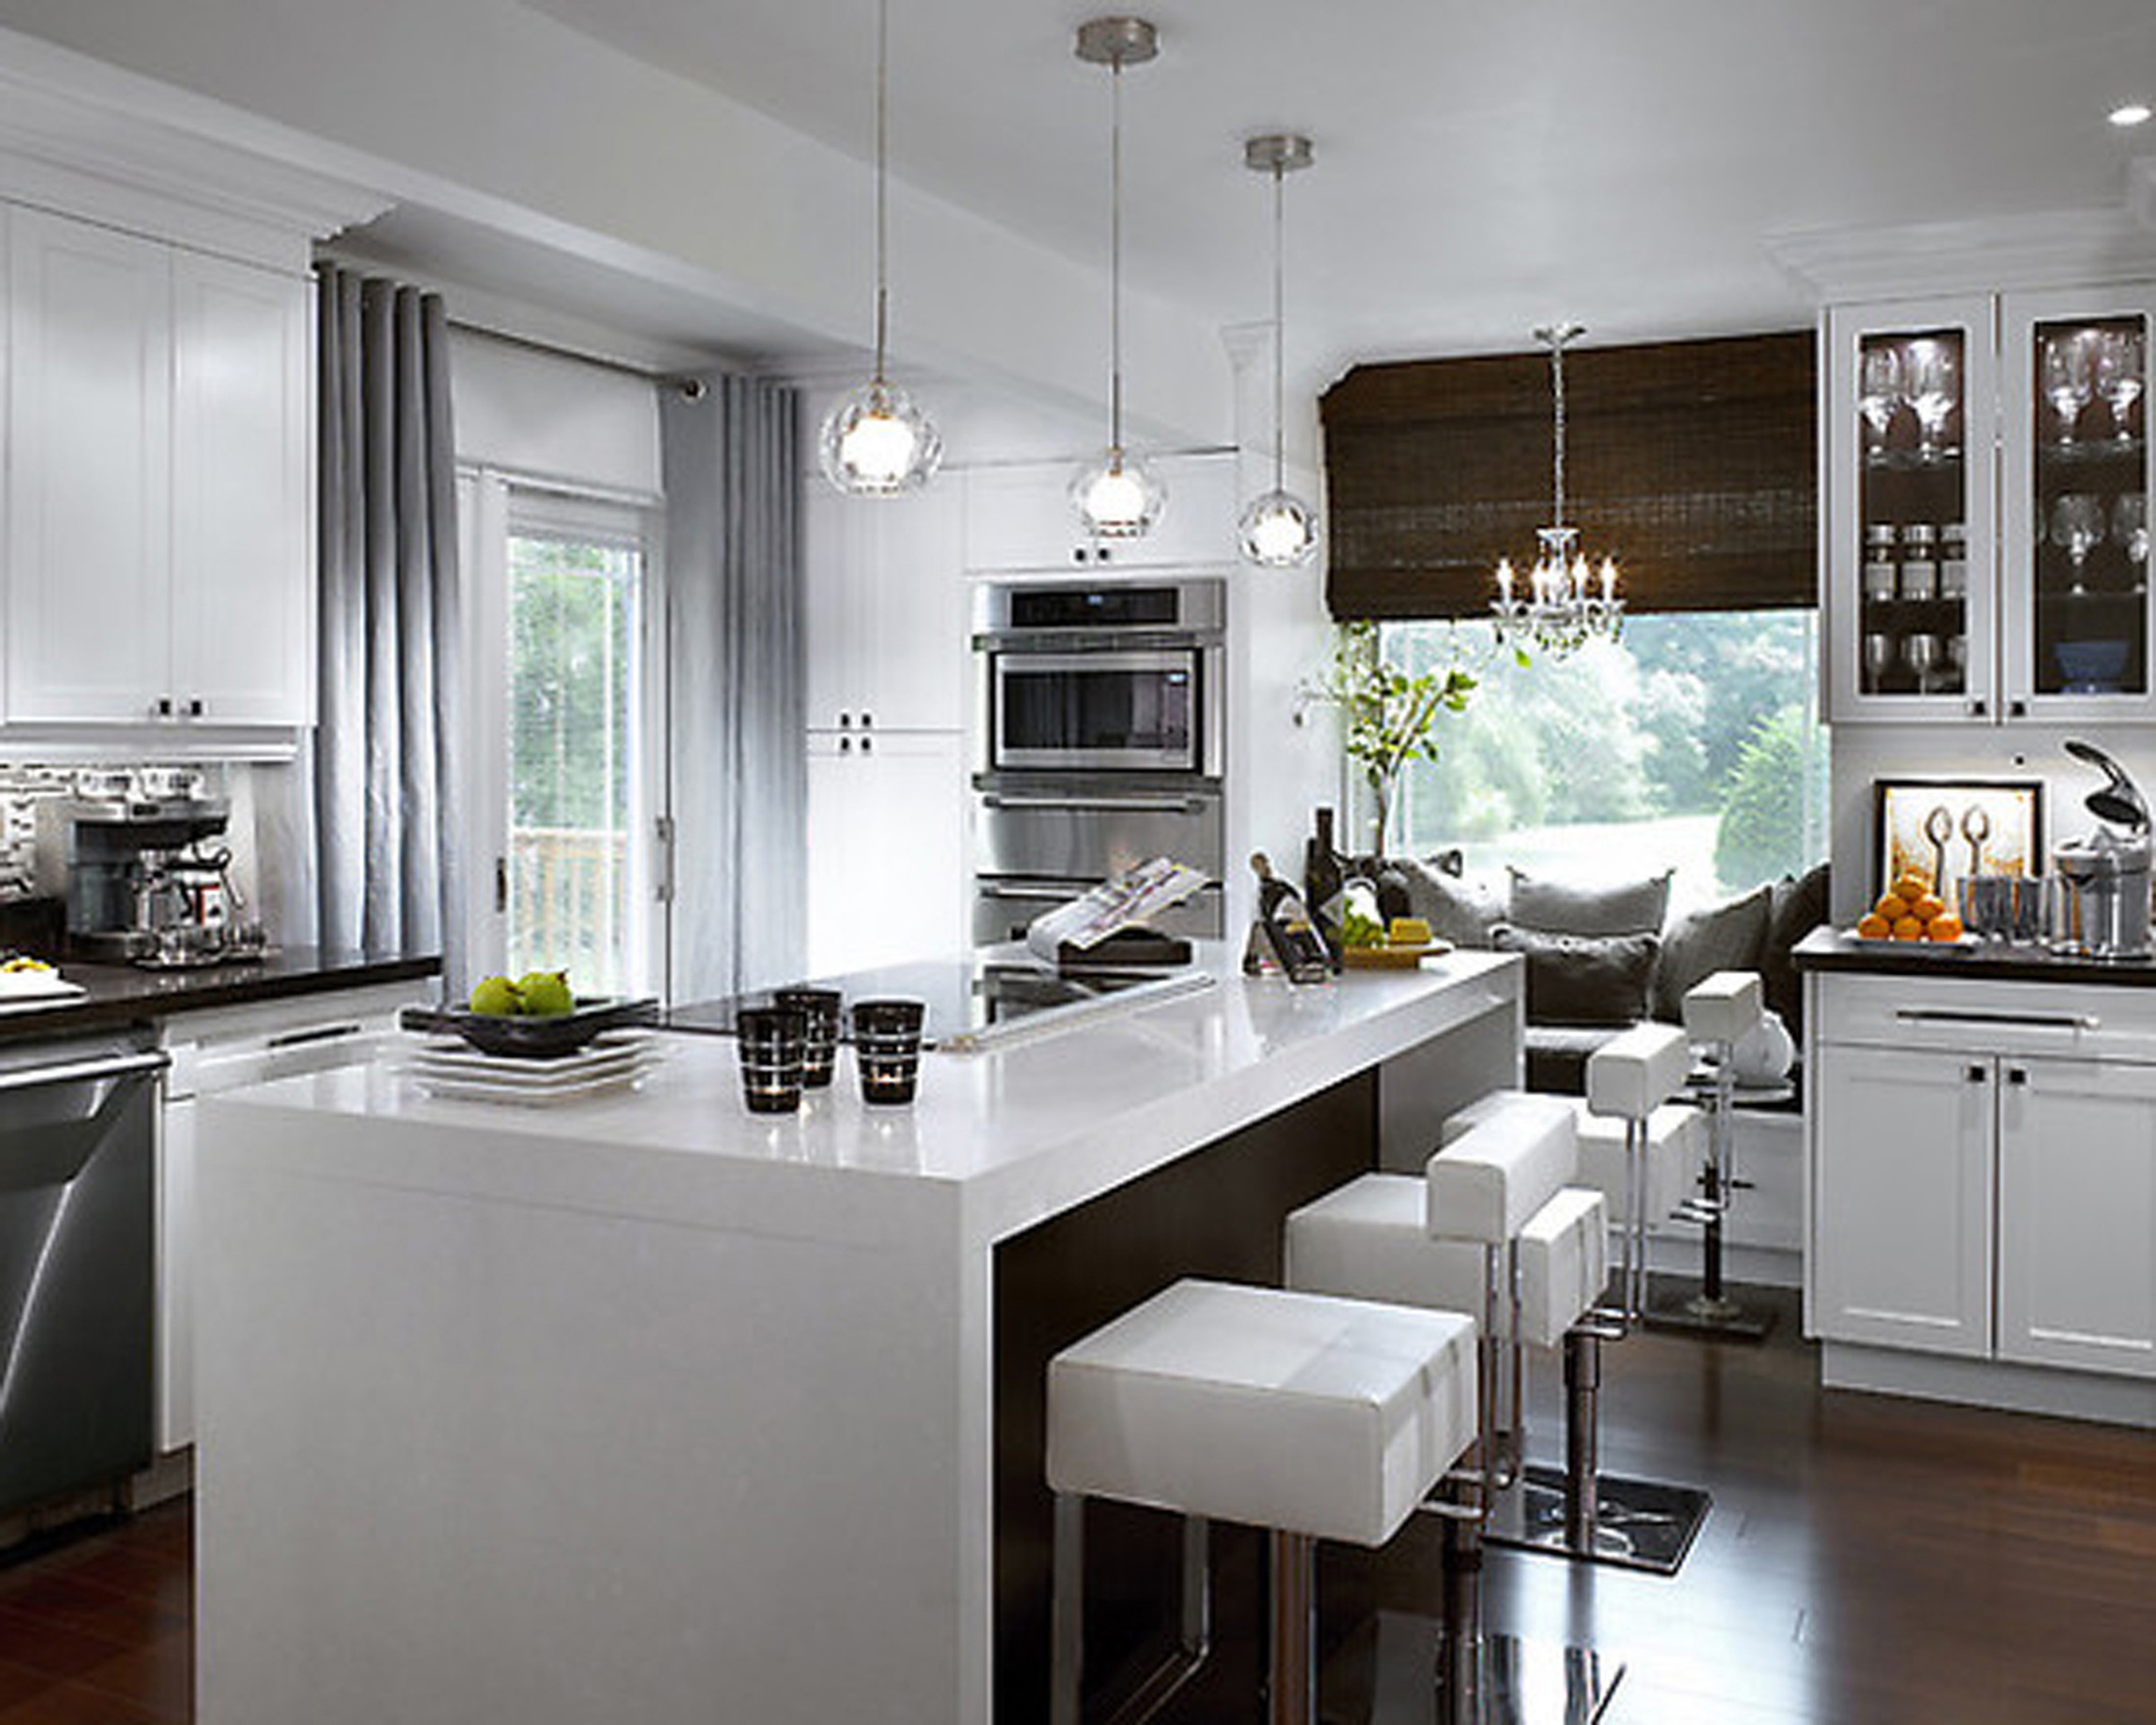 Modern Kitchen Design With White And Grey Interior Also Interesting Window Treatment Idea (View 10 of 31)